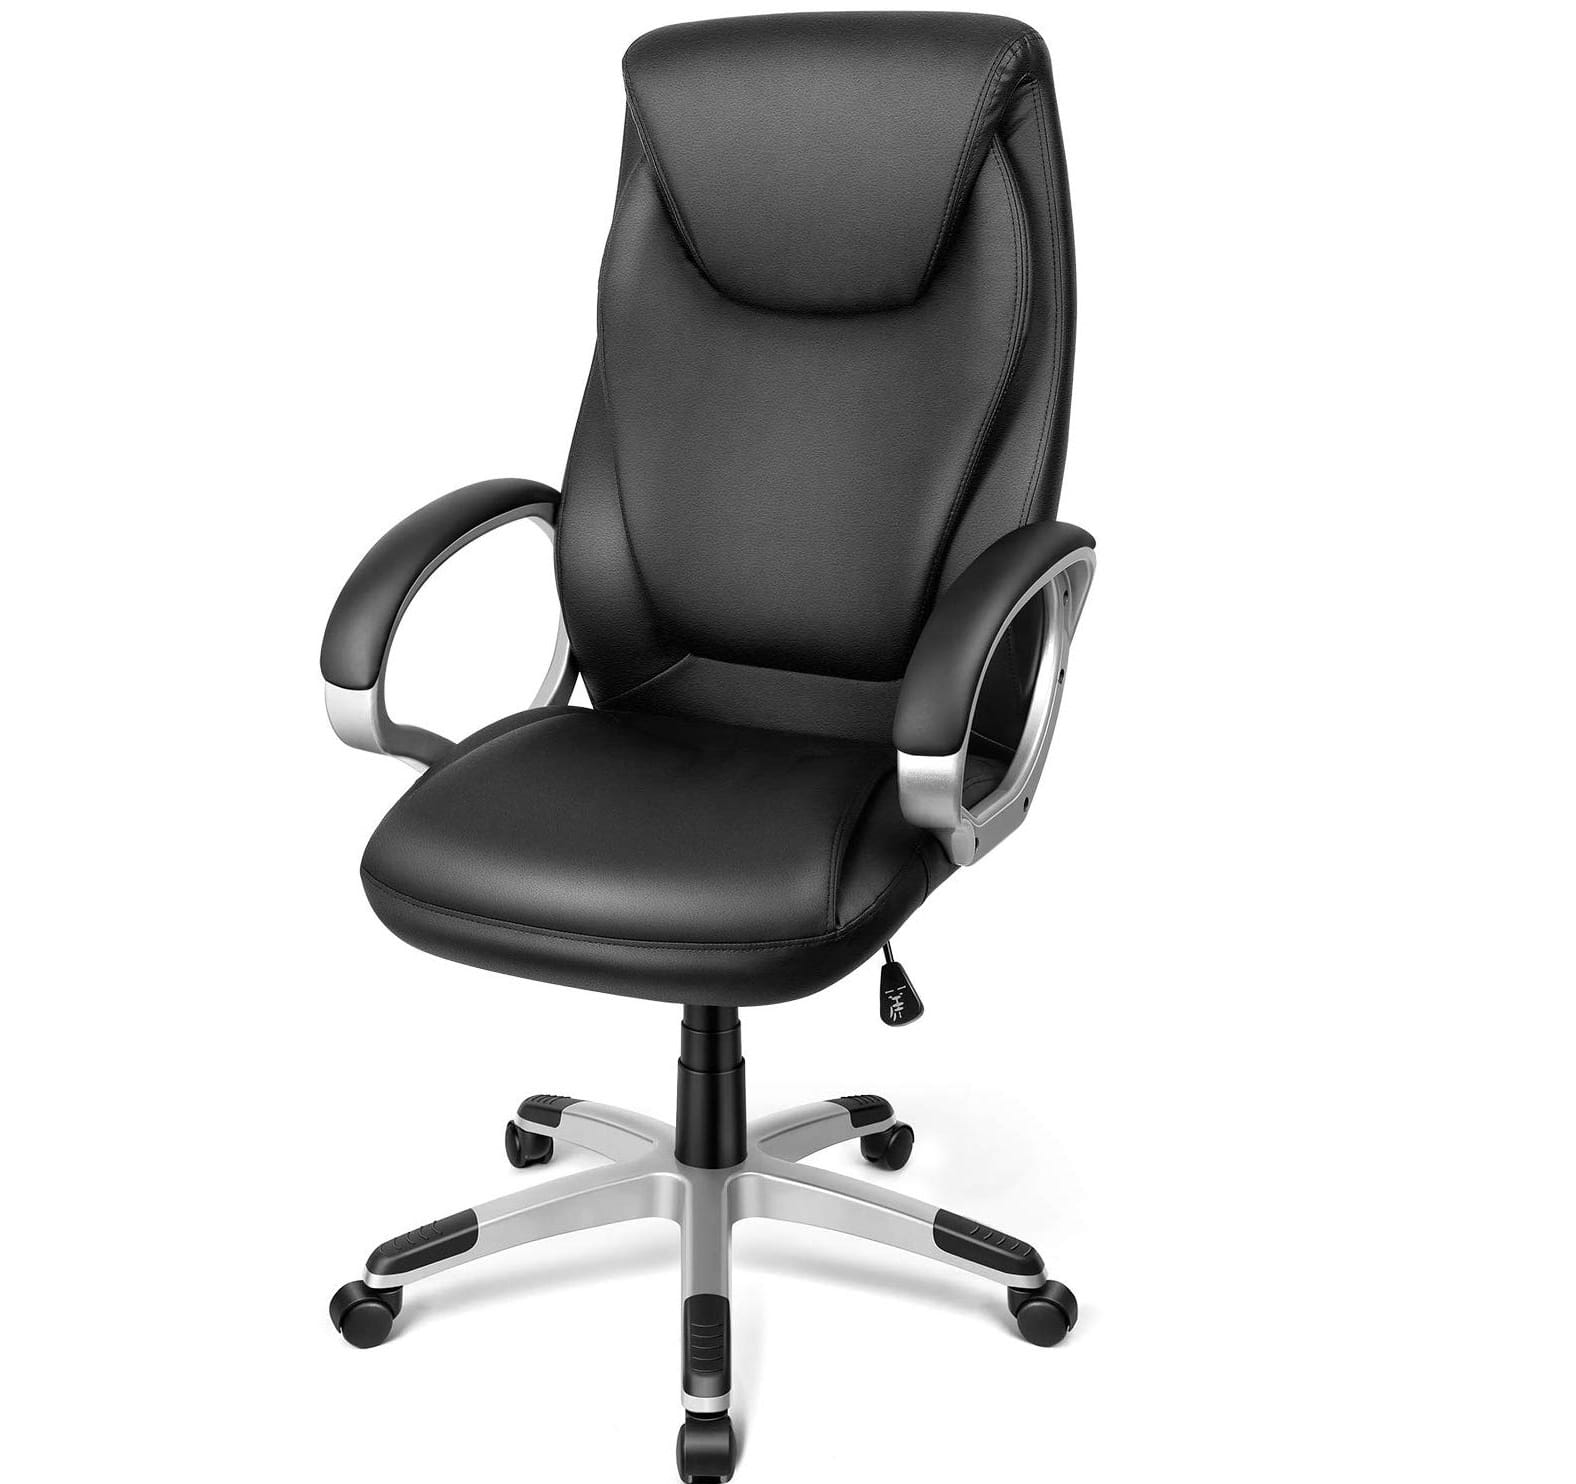 12.TUSY-Office Chair Desk High-Back Executive Swivel Chair Computer Chair Black with Back Support and Armrest in Home Office